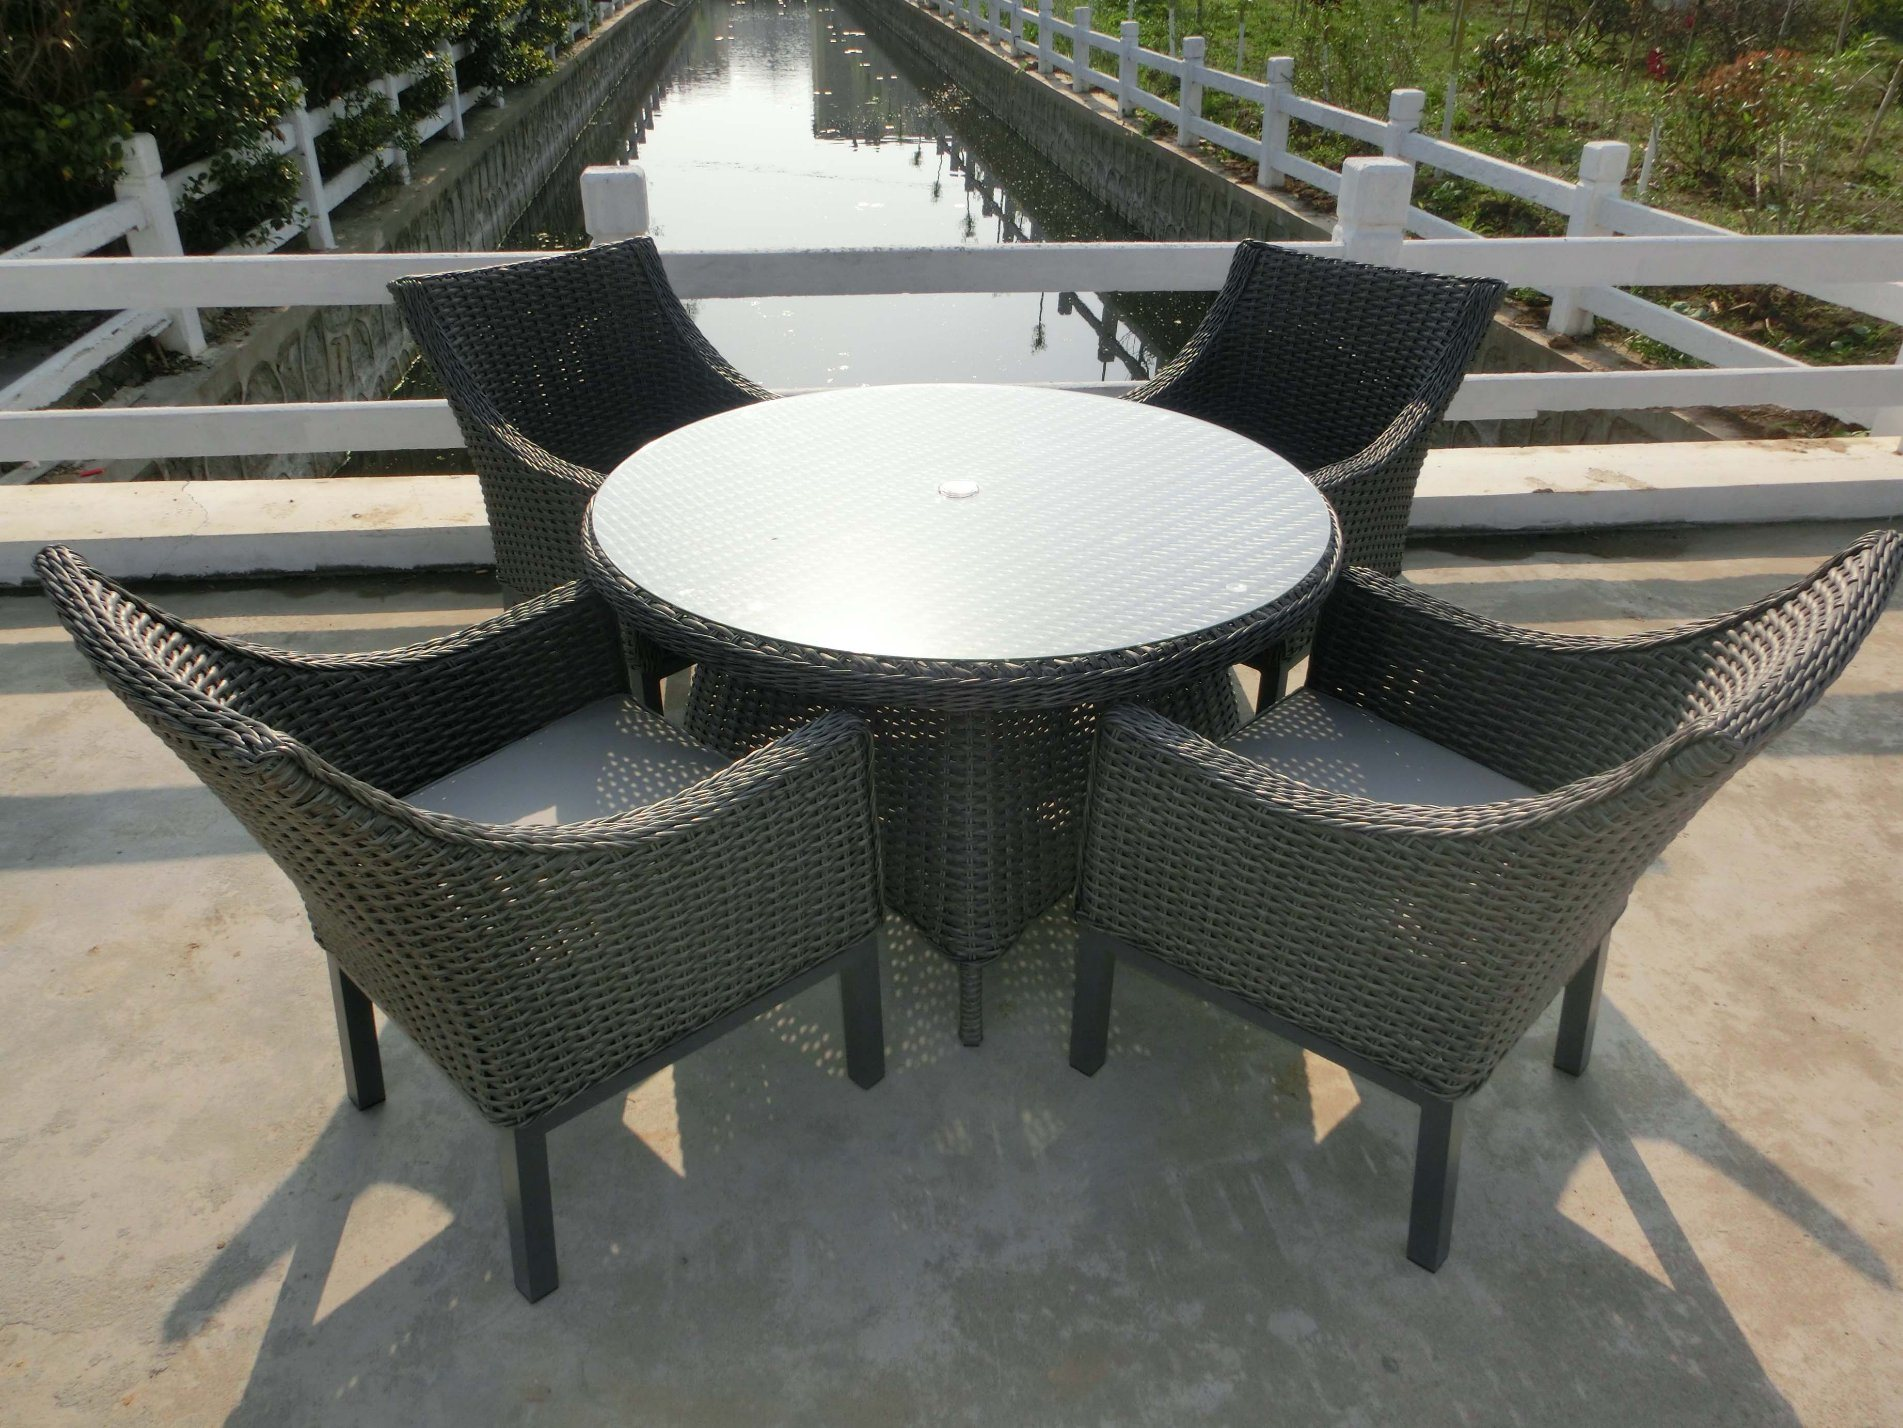 Outdoor Round Wicker Furniture Dining Set